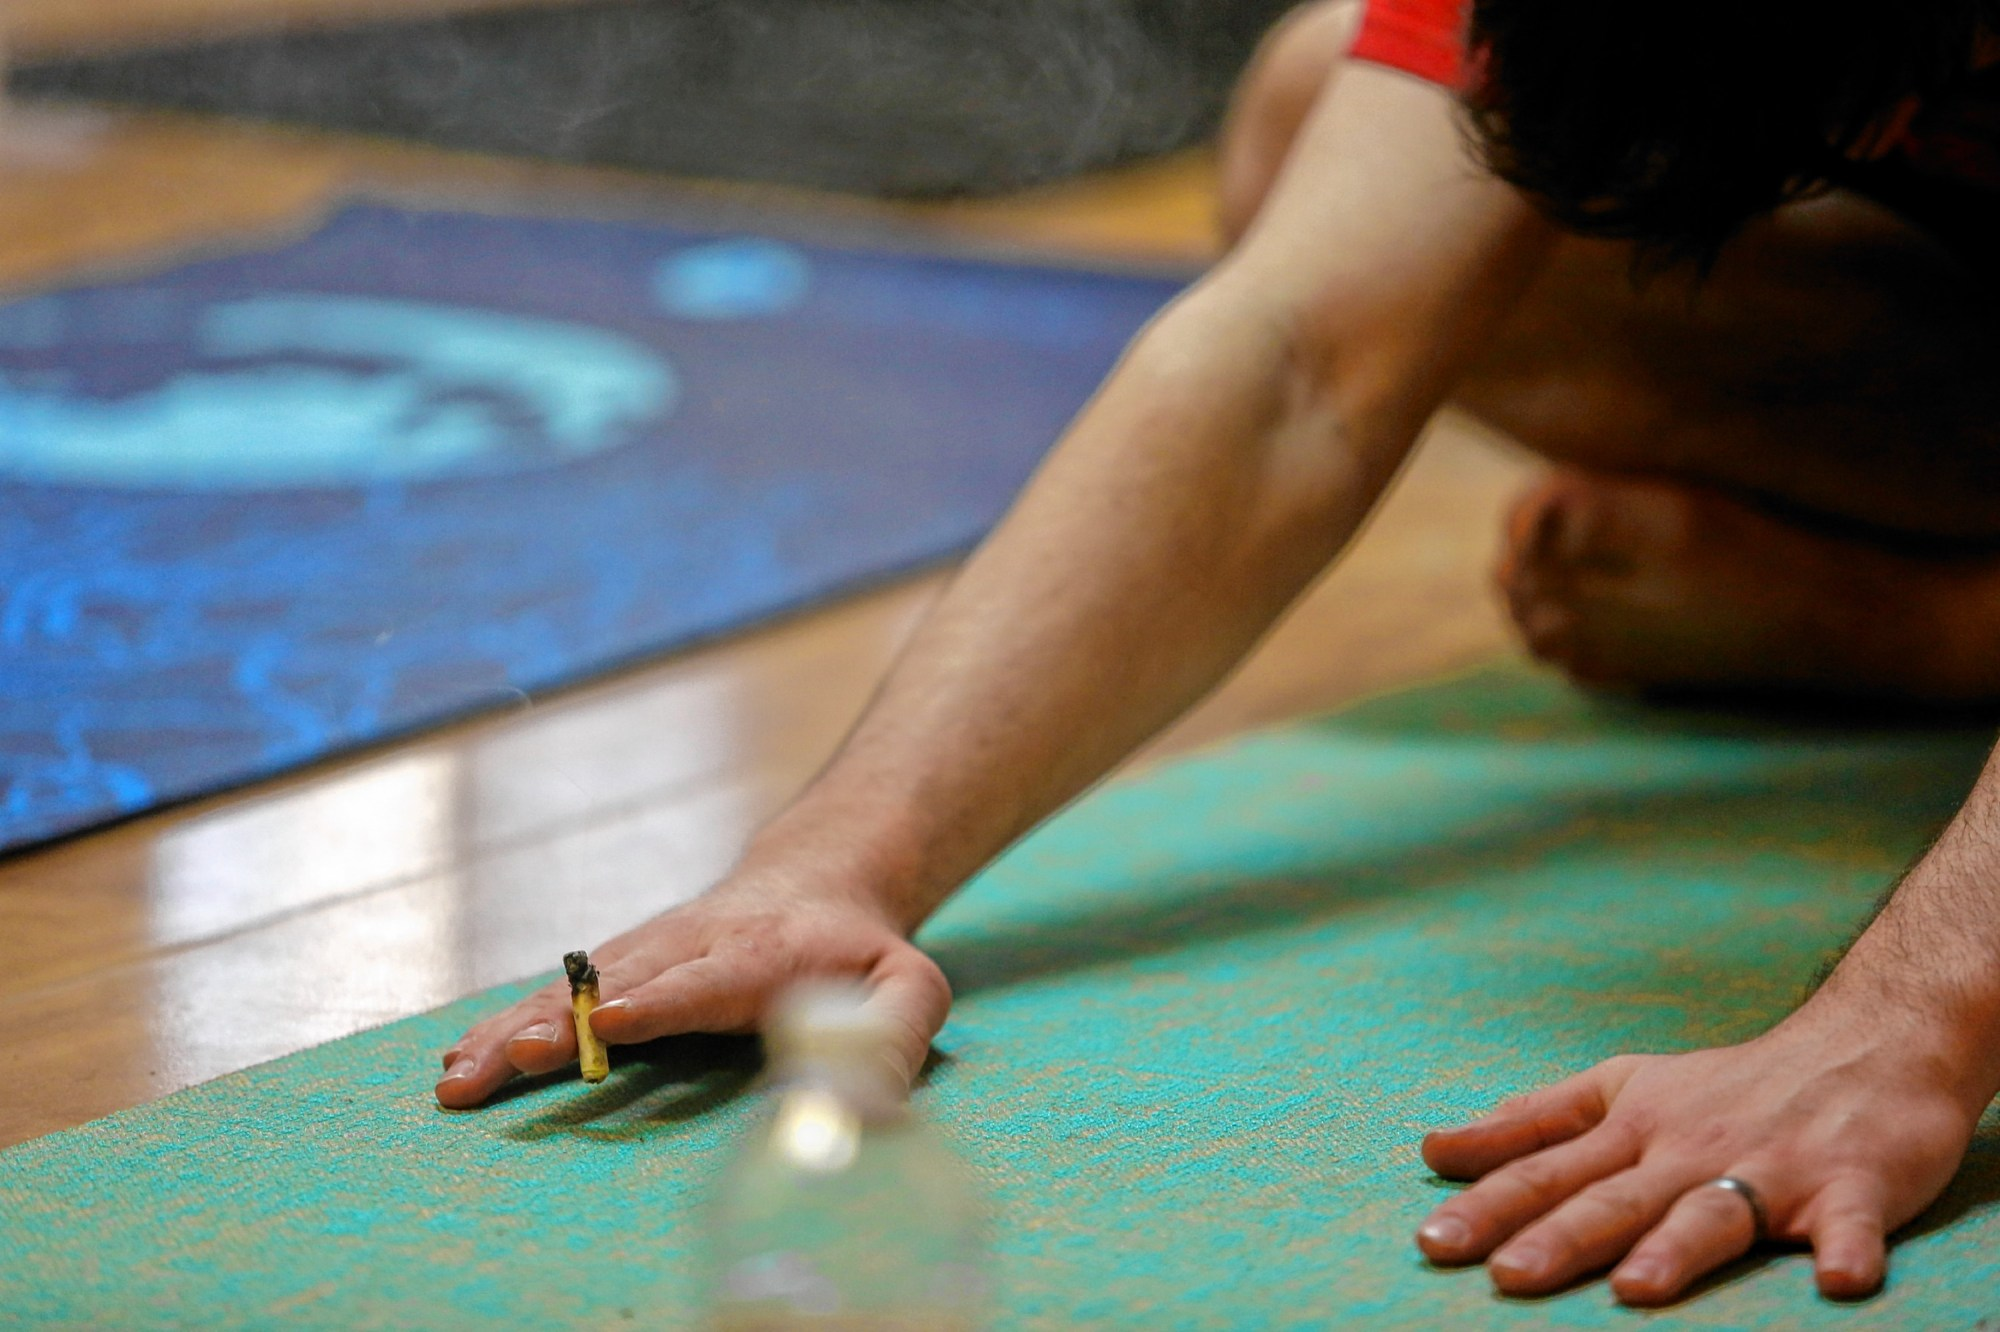 hight resolution of kyle young of easthampton smokes cannabis while stretching april 7 2018 during chronic trips inhale exhale yoga at ora care in springfield